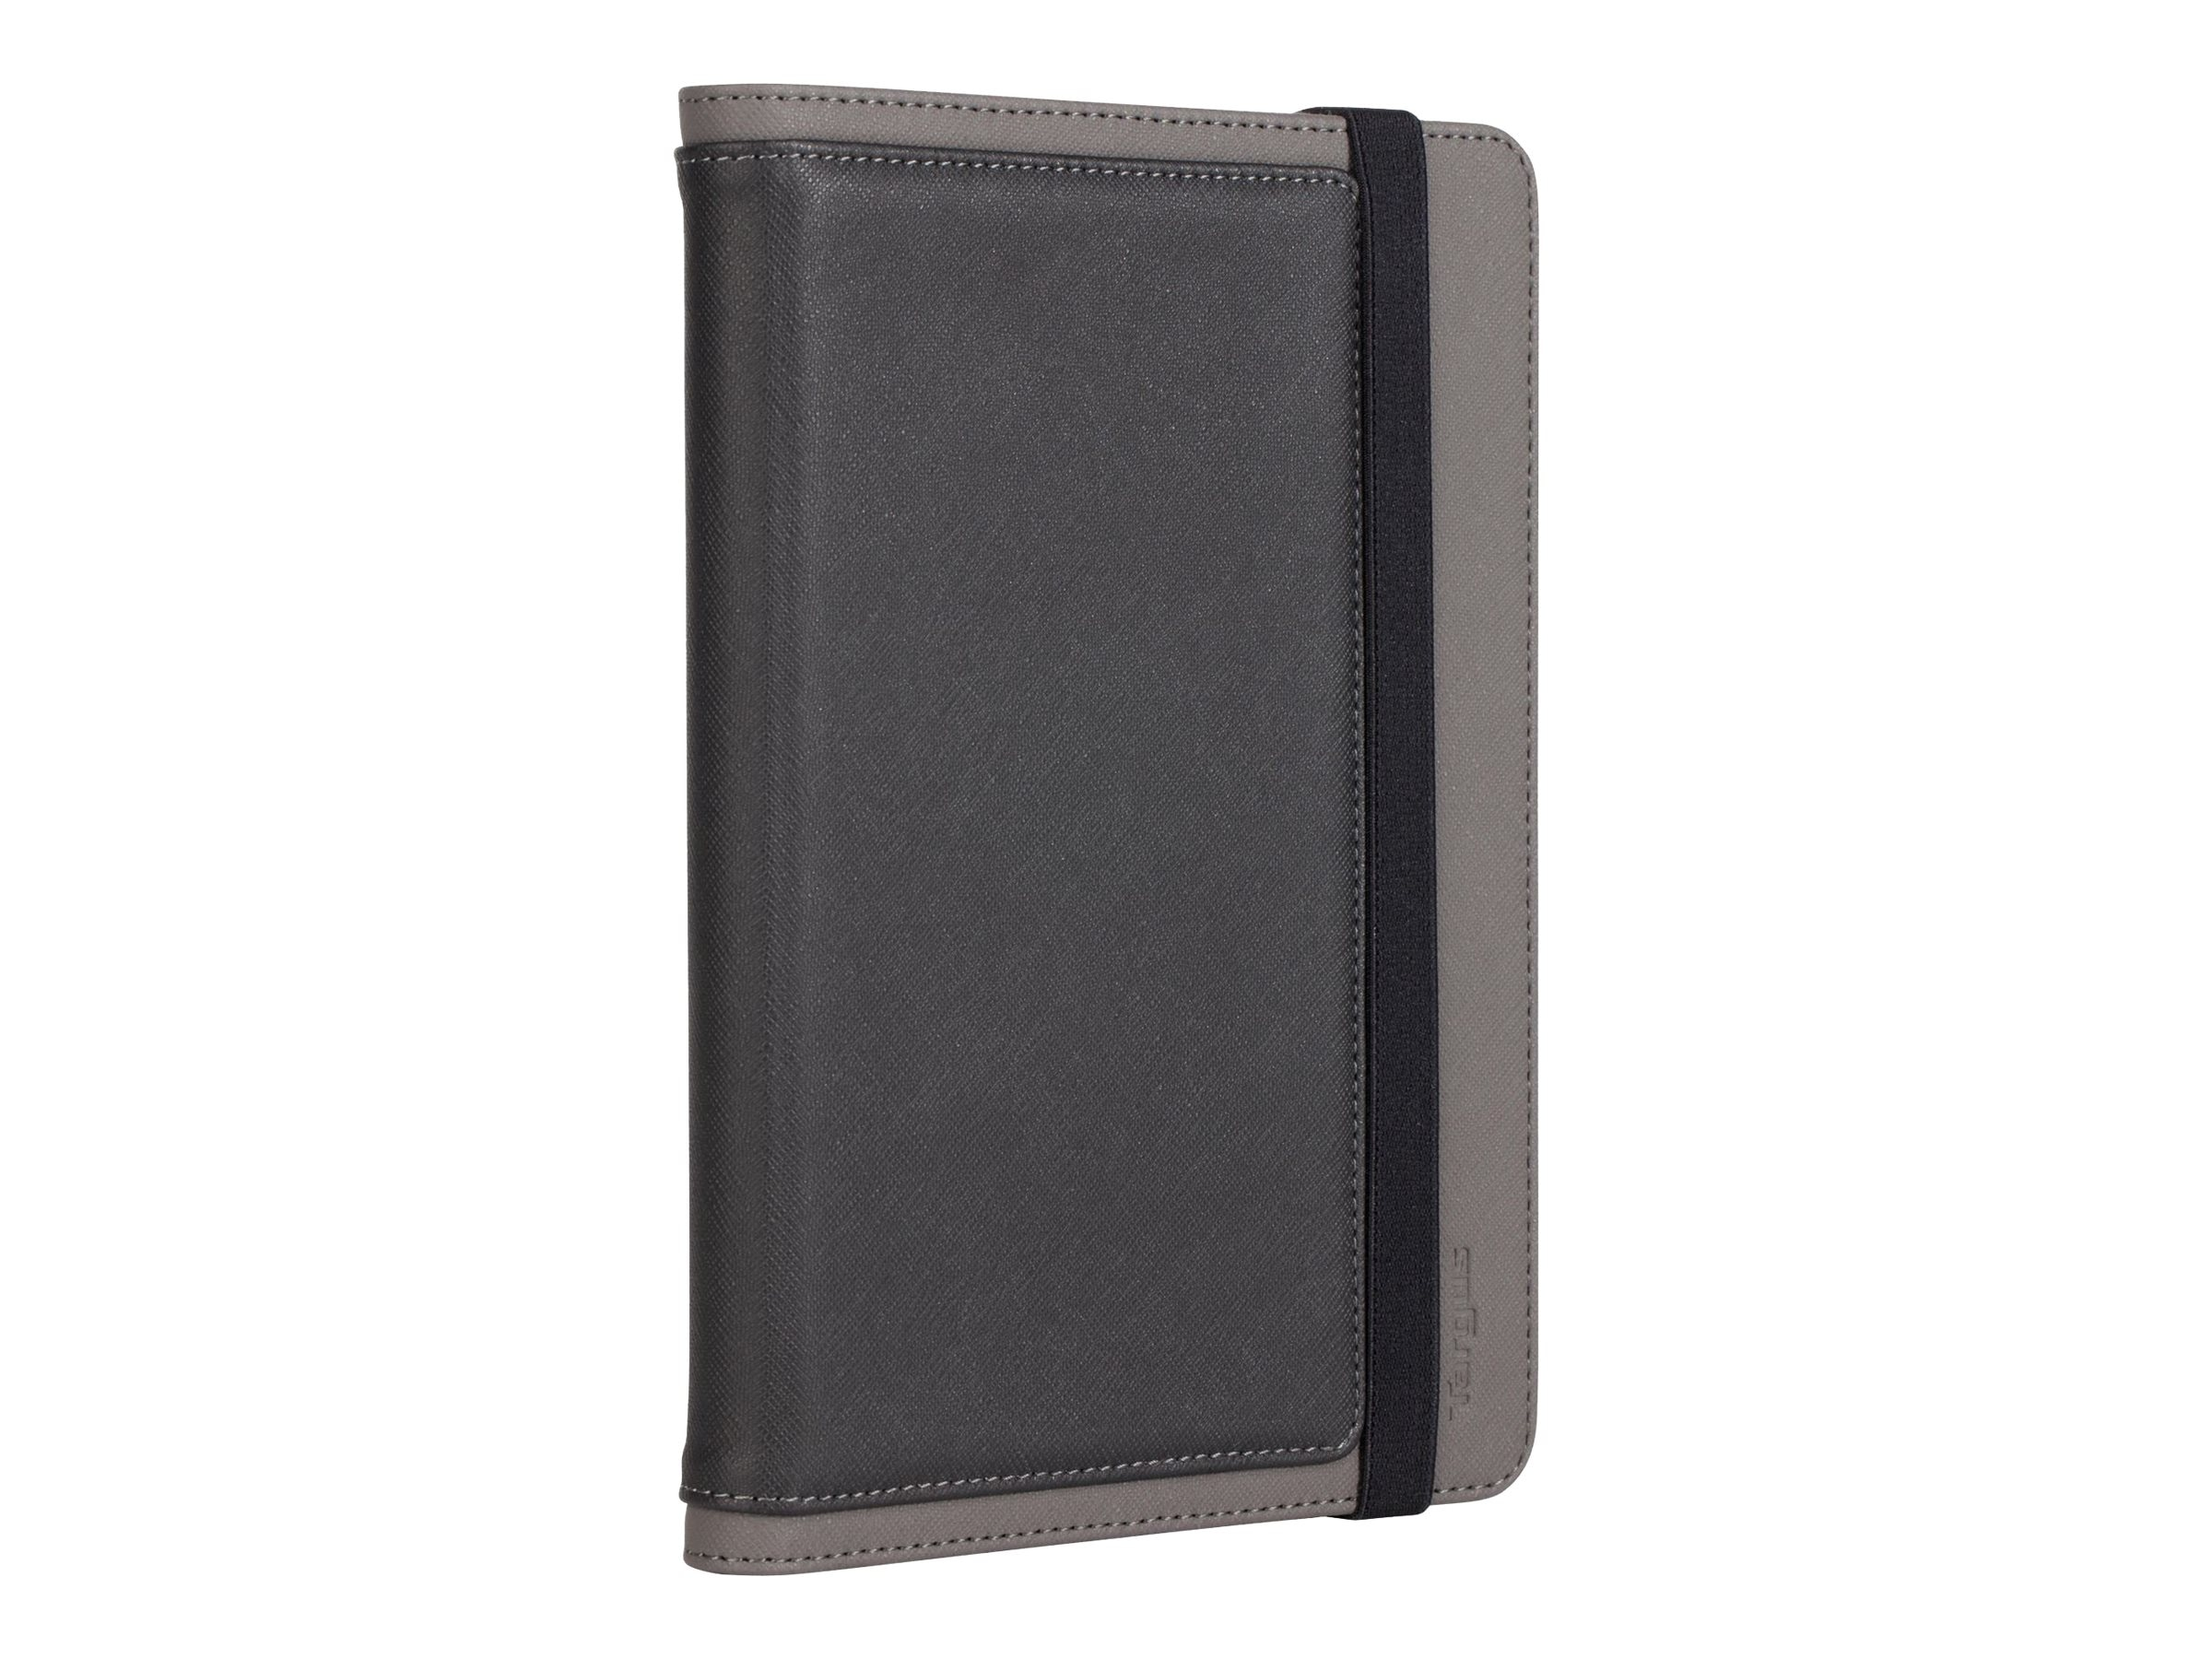 Targus Foliostand for iPad mini, Black Gray Crosshatch